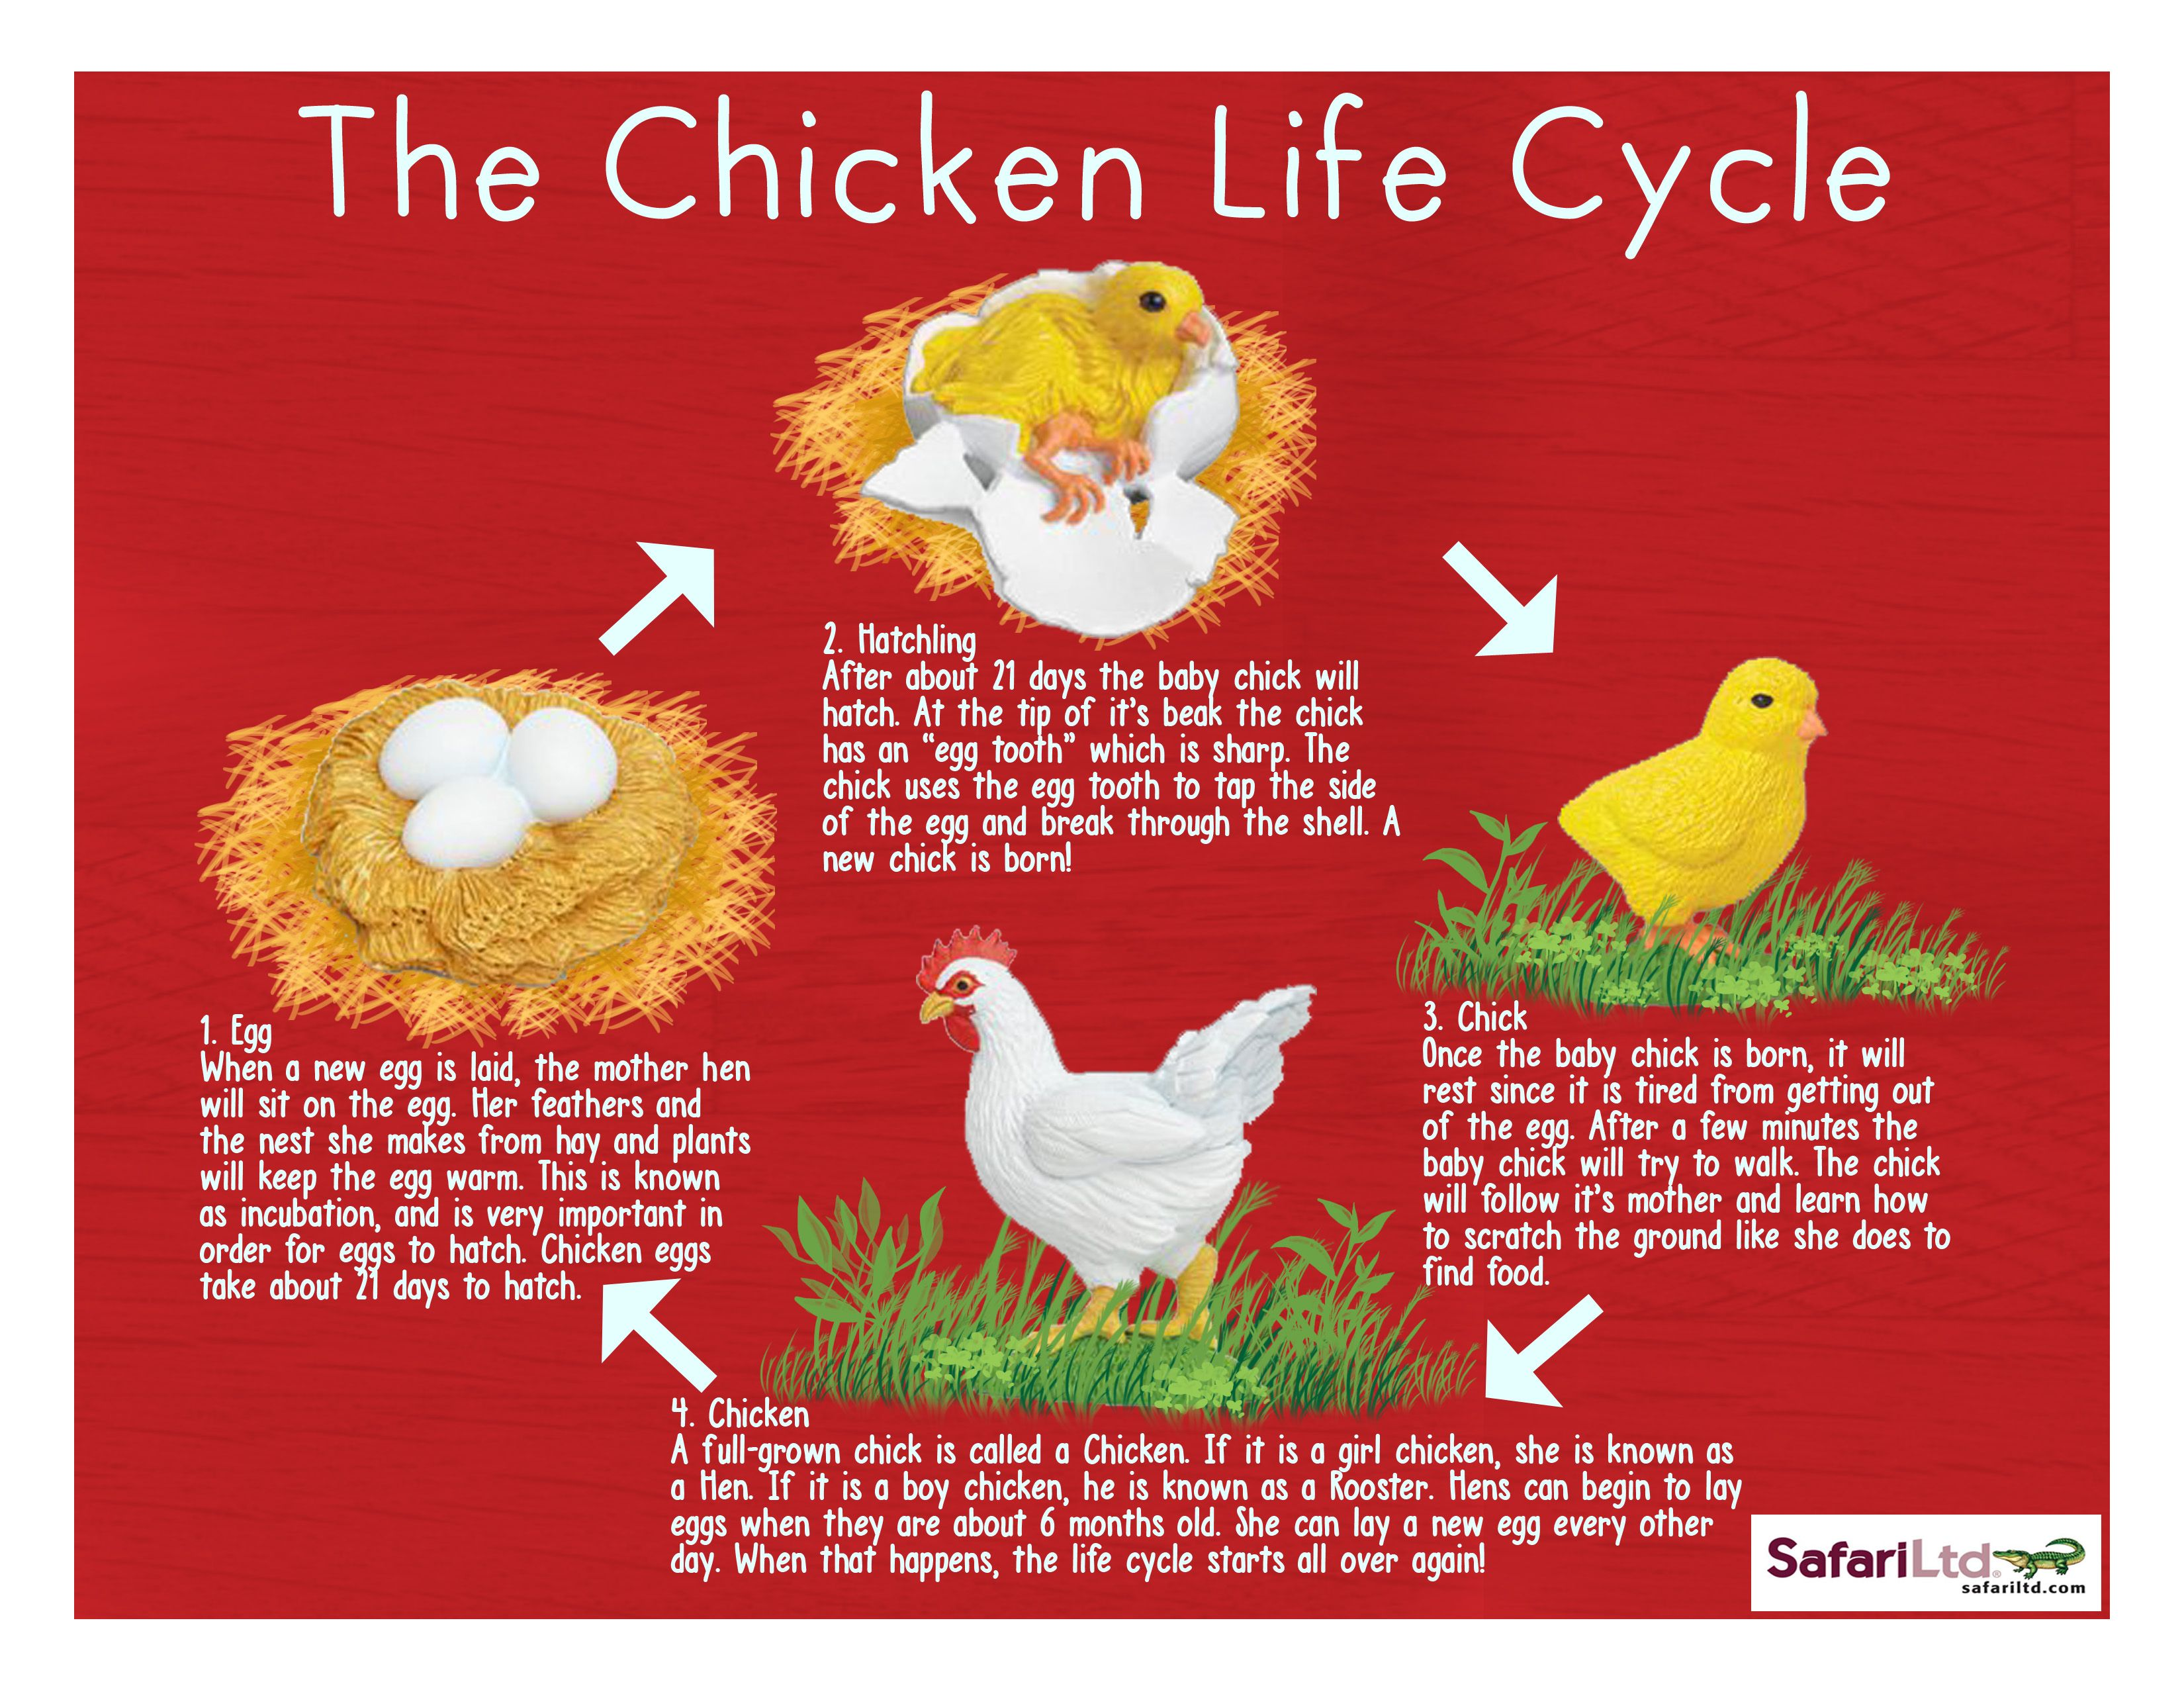 The Chicken Life Cycle